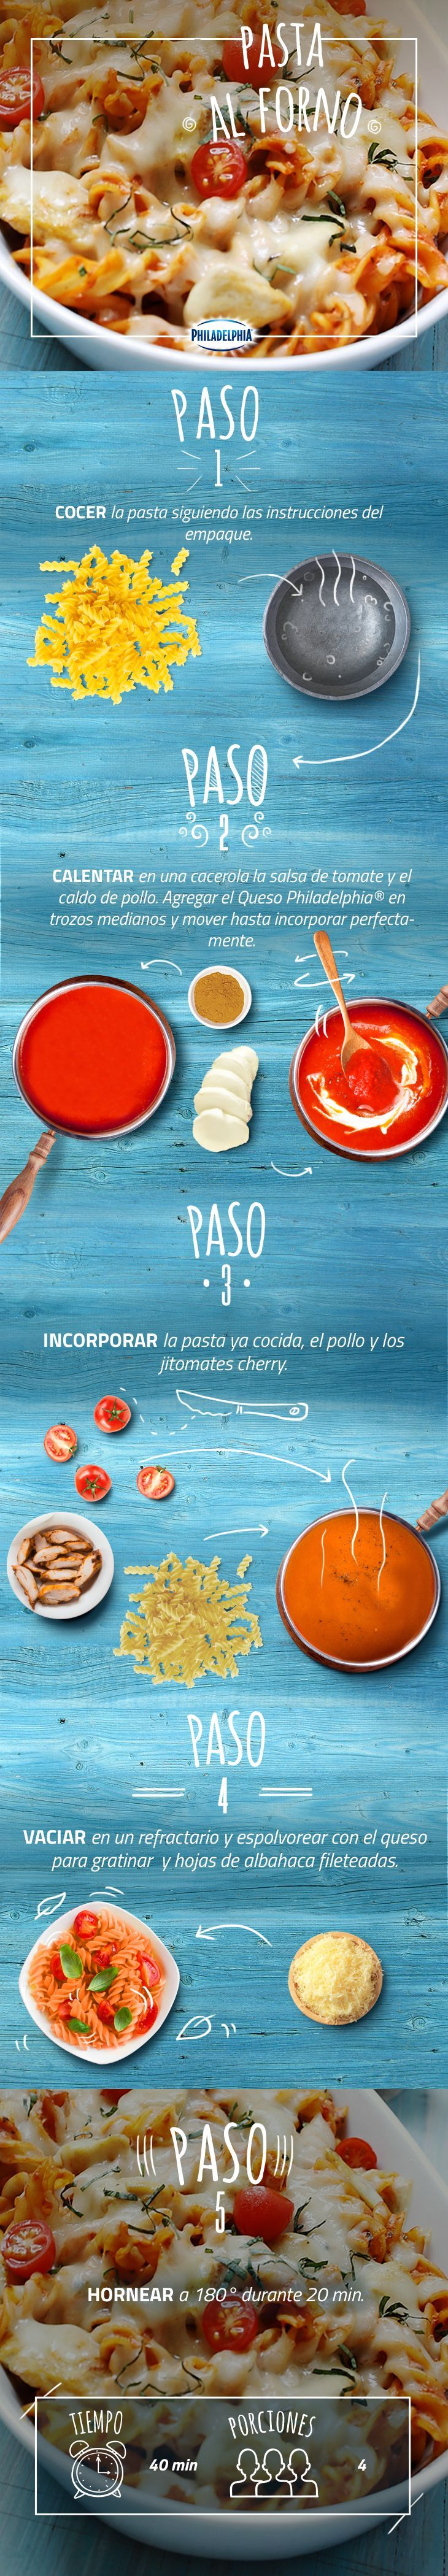 29 best Maiz images on Pinterest | Mexican cuisine, Cooking food and ...